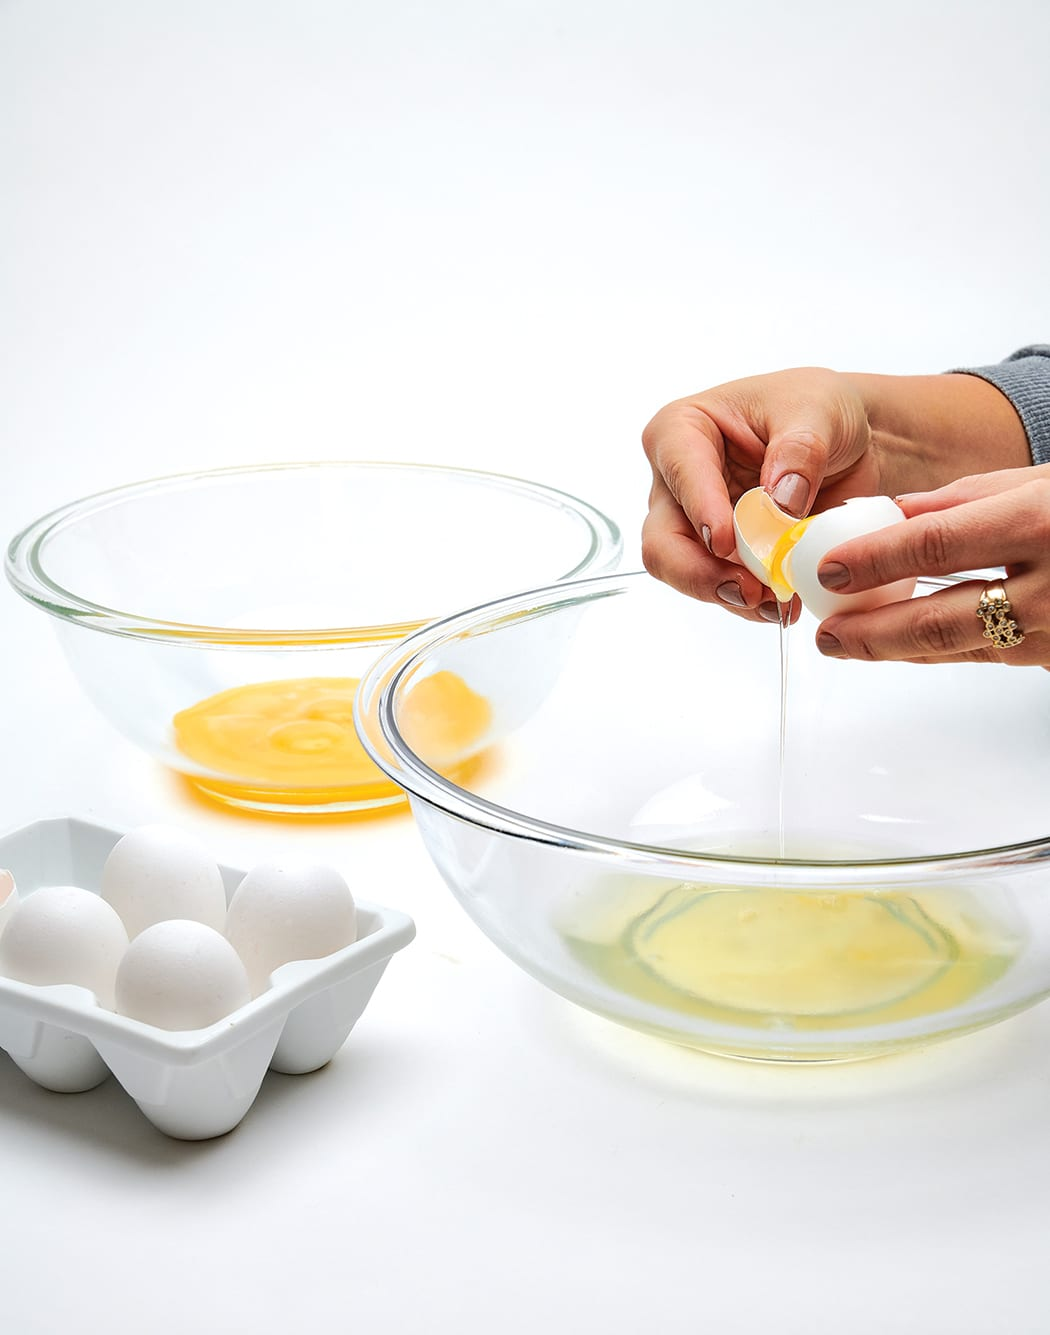 Separate the eggs, placing the whites in a large bowl and the yolks in a medium bowl.